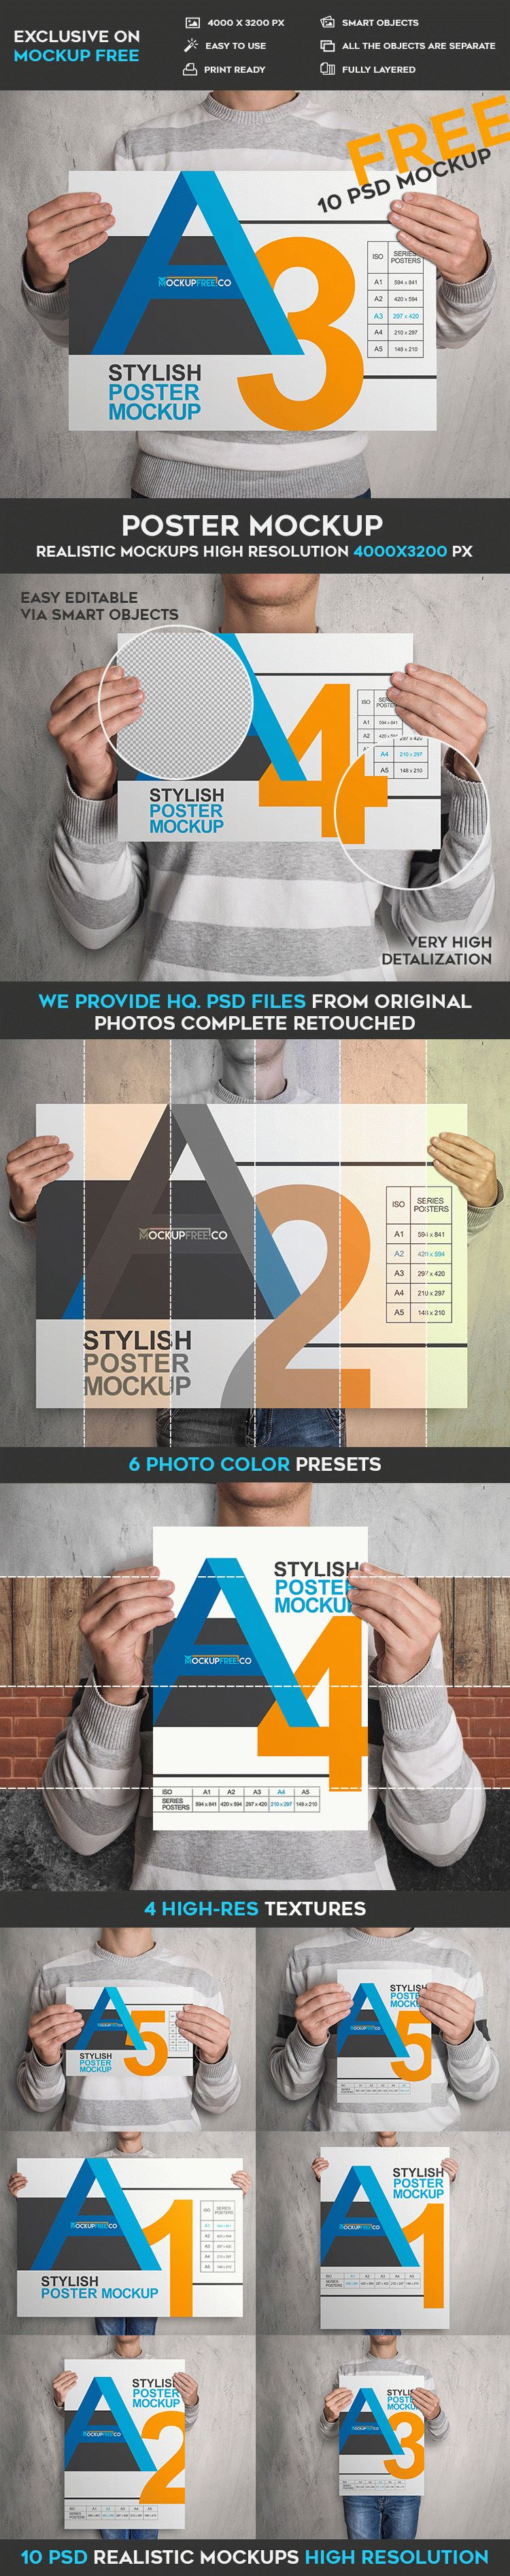 6 poster design photo mockups - It Was Created Exclusively For Our Website The Mock Up Is Fully Layered And Well Organized You Are Free To Download This Psd Mockup Template And Modify It